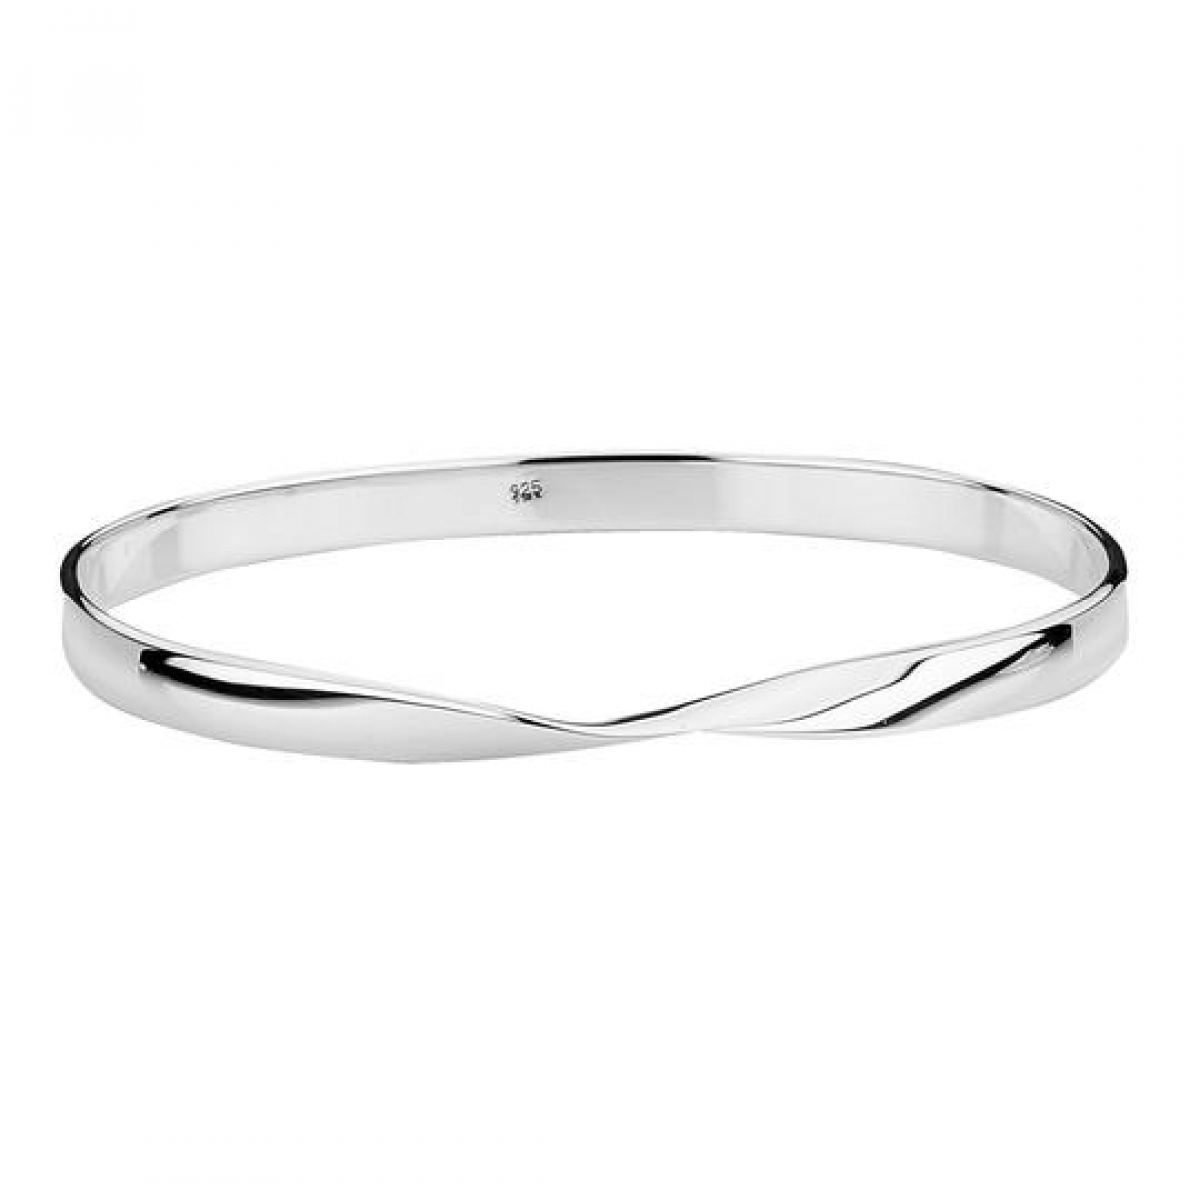 Silver Bangle with Twist